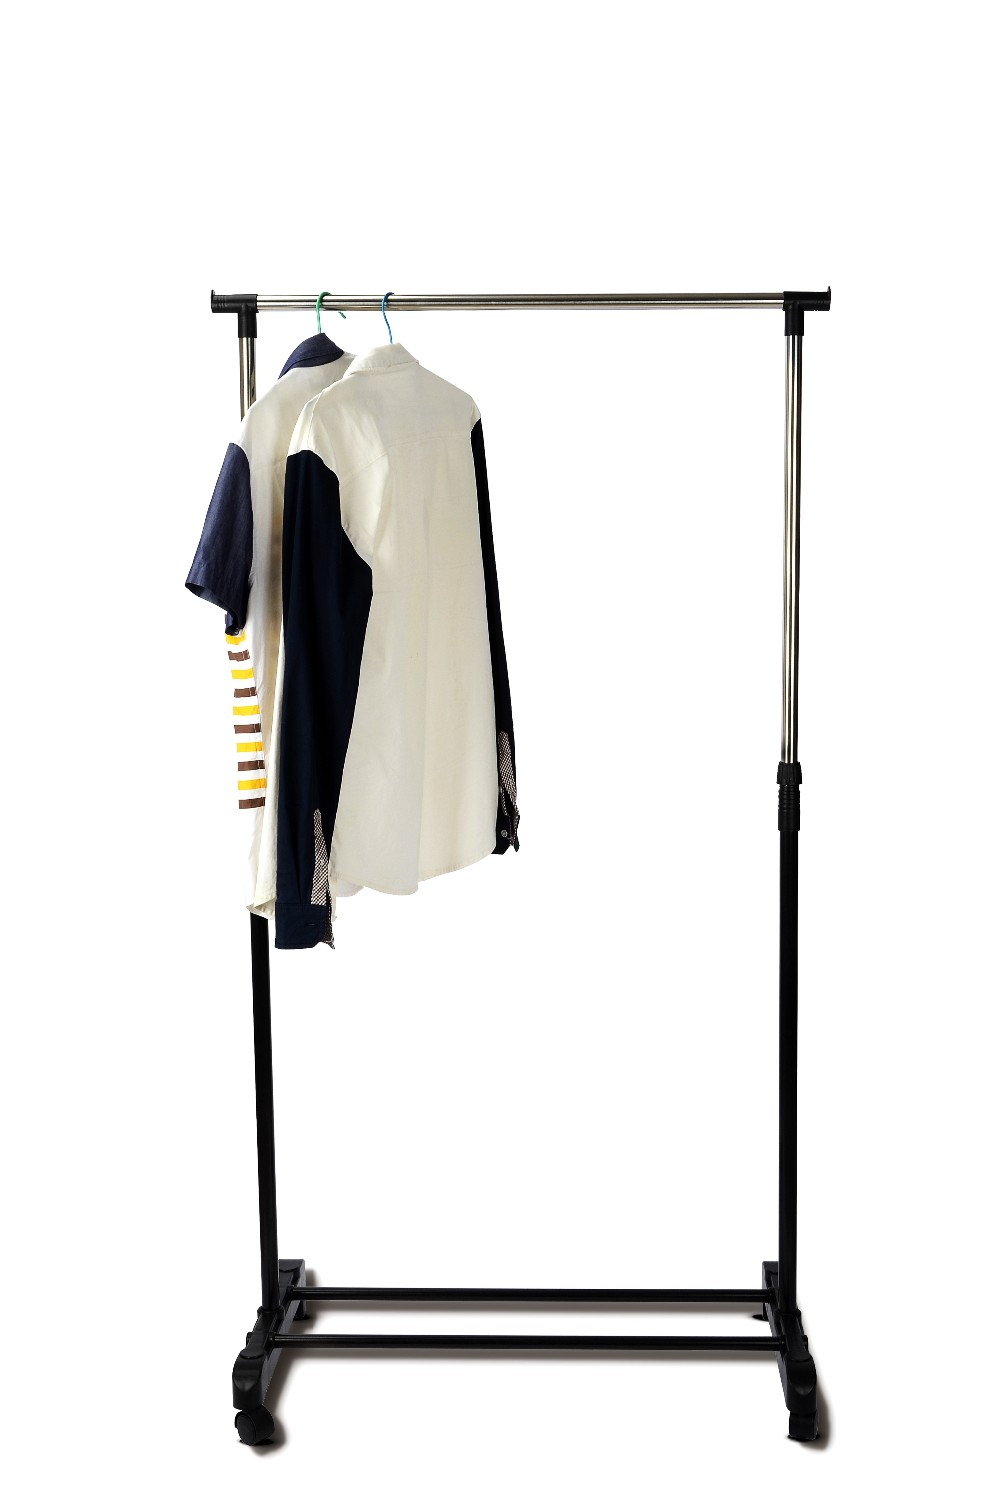 Cloth Hanger Stand Single Strainless Steel Garment Rack Cloth Hanger Stand Tm 311 Buy Single Strainless Steel Garment Rack Single Cloth Hanger Stand Cloth Drying Stand